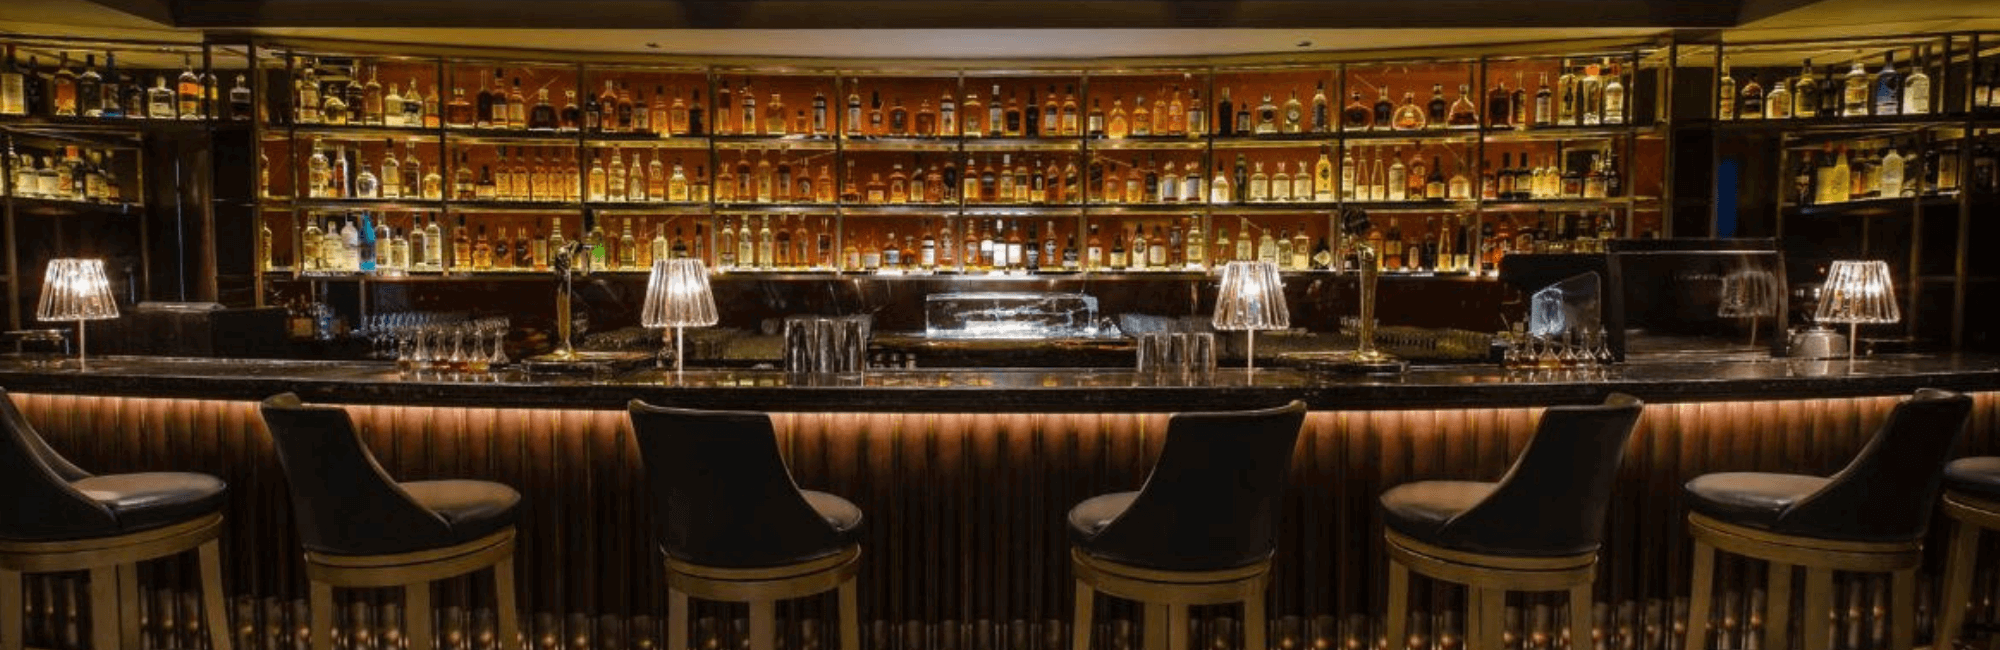 Manhattan Bar, Singapore, Bar Takeover at 34 Mayfair in Central London